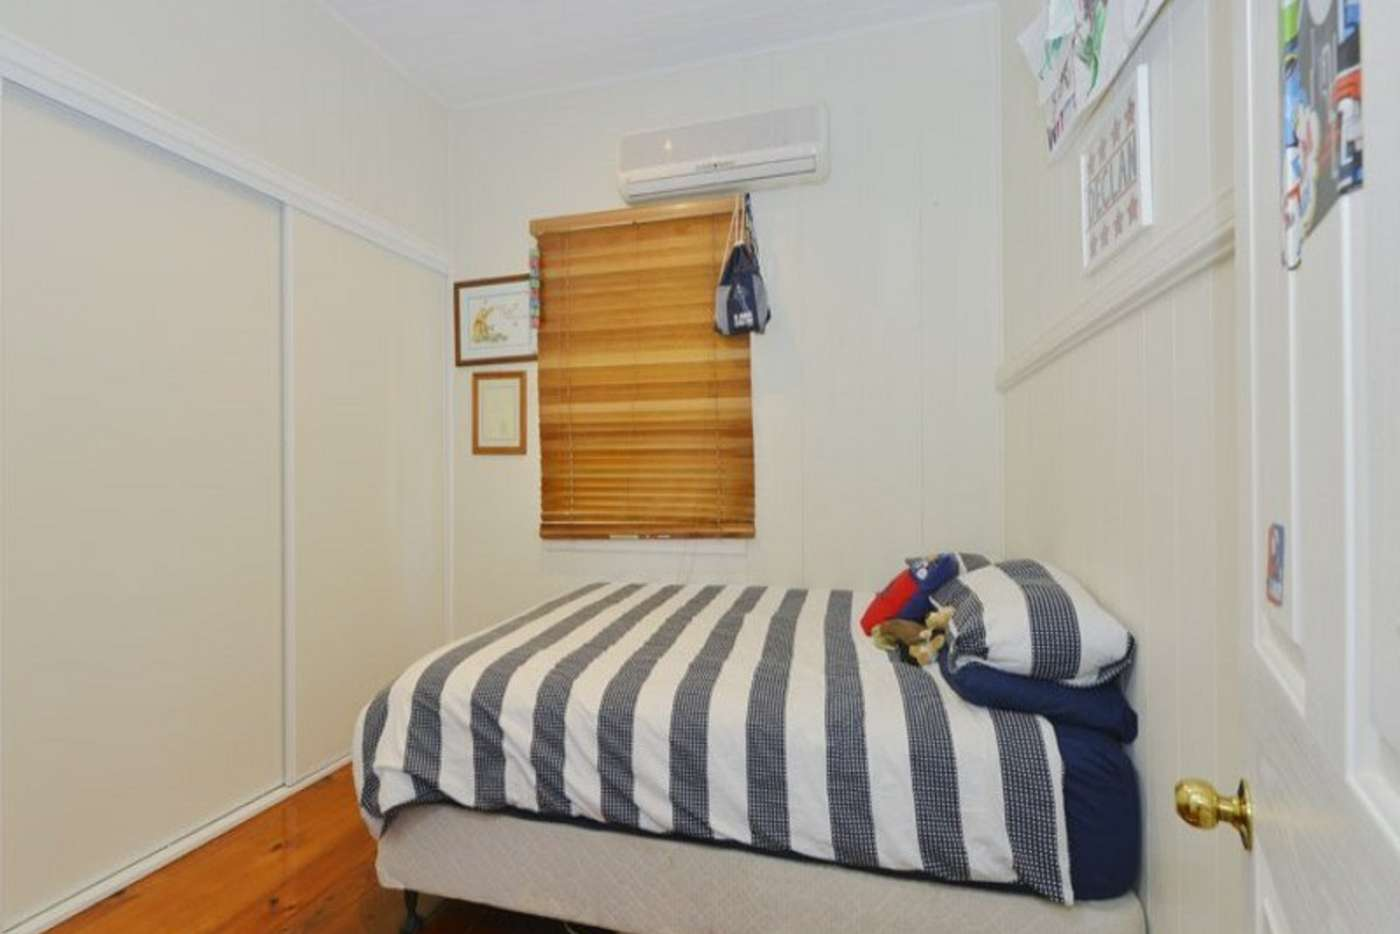 Sixth view of Homely house listing, 47 Lockhart Street, Woolloongabba QLD 4102